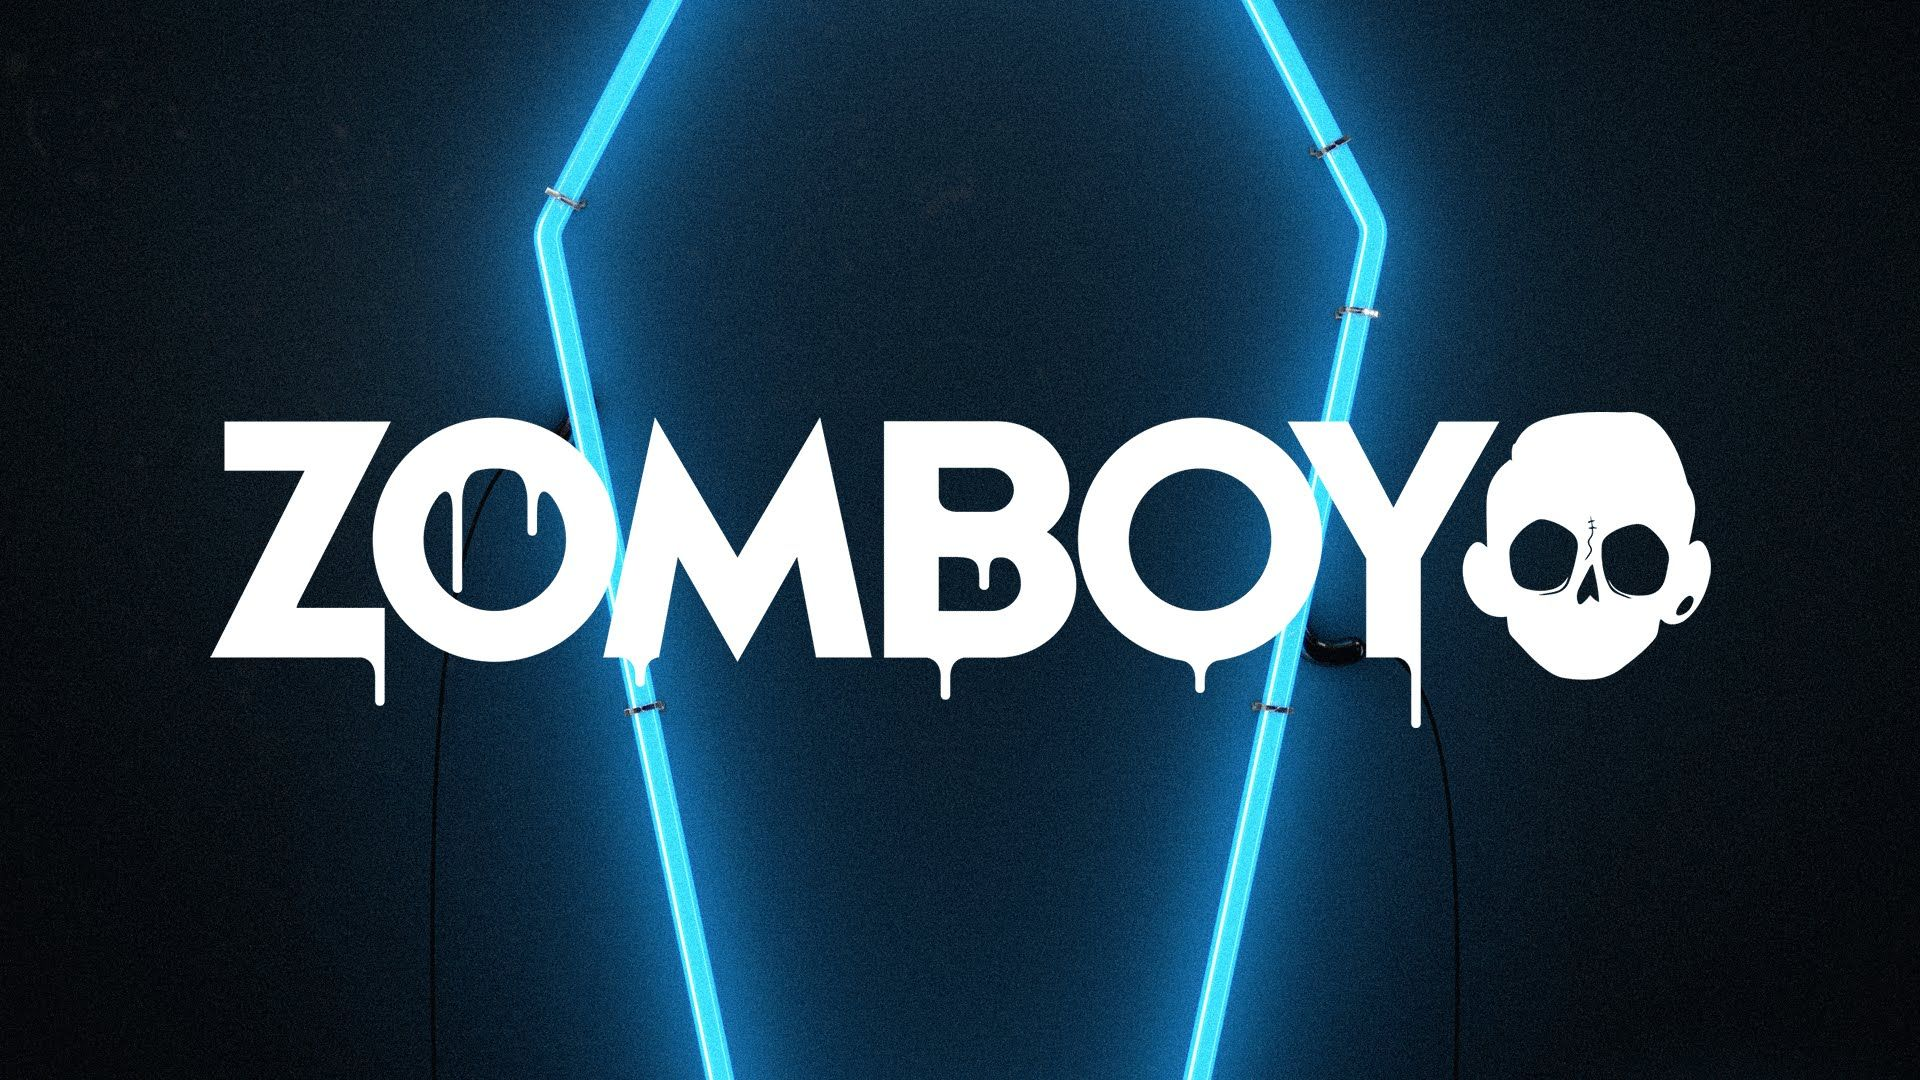 Zomboy   Lights Out Trap Zomboy Dubstep Neon signs Youtube 1920x1080